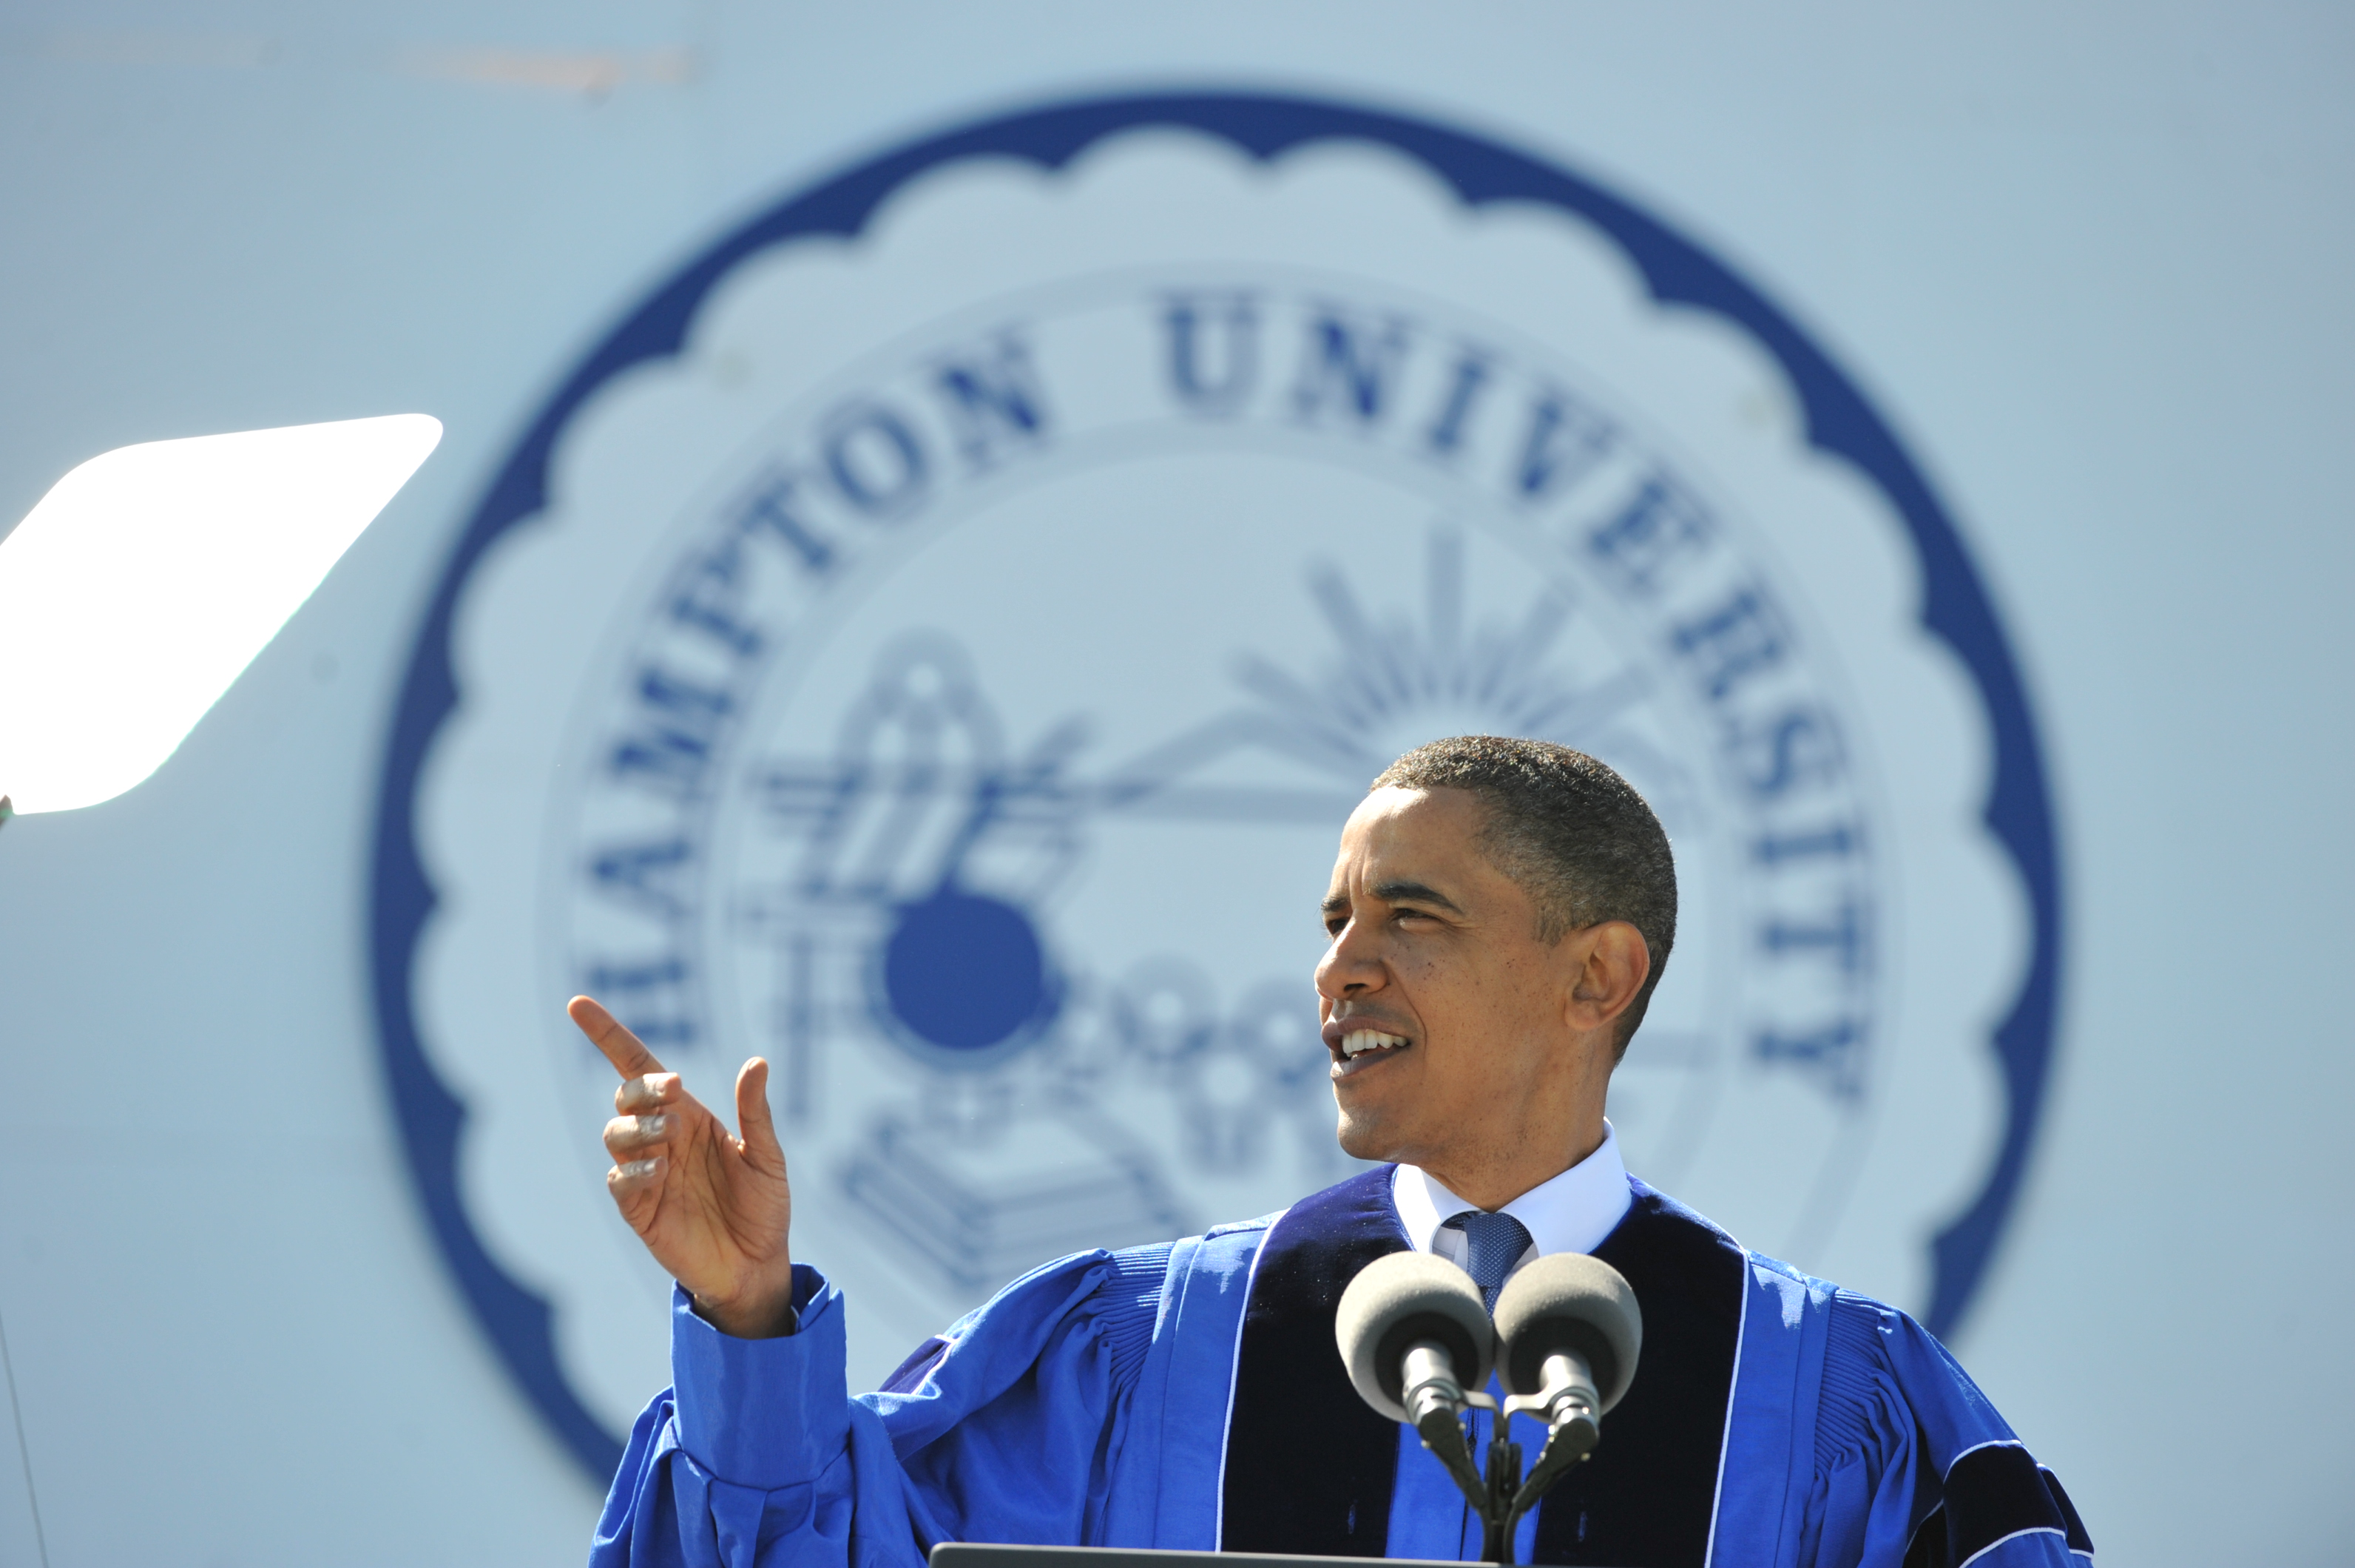 President Barack Obama delivers the commencement address at Hampton University  on May 9, 2010 in Hampton, VA.